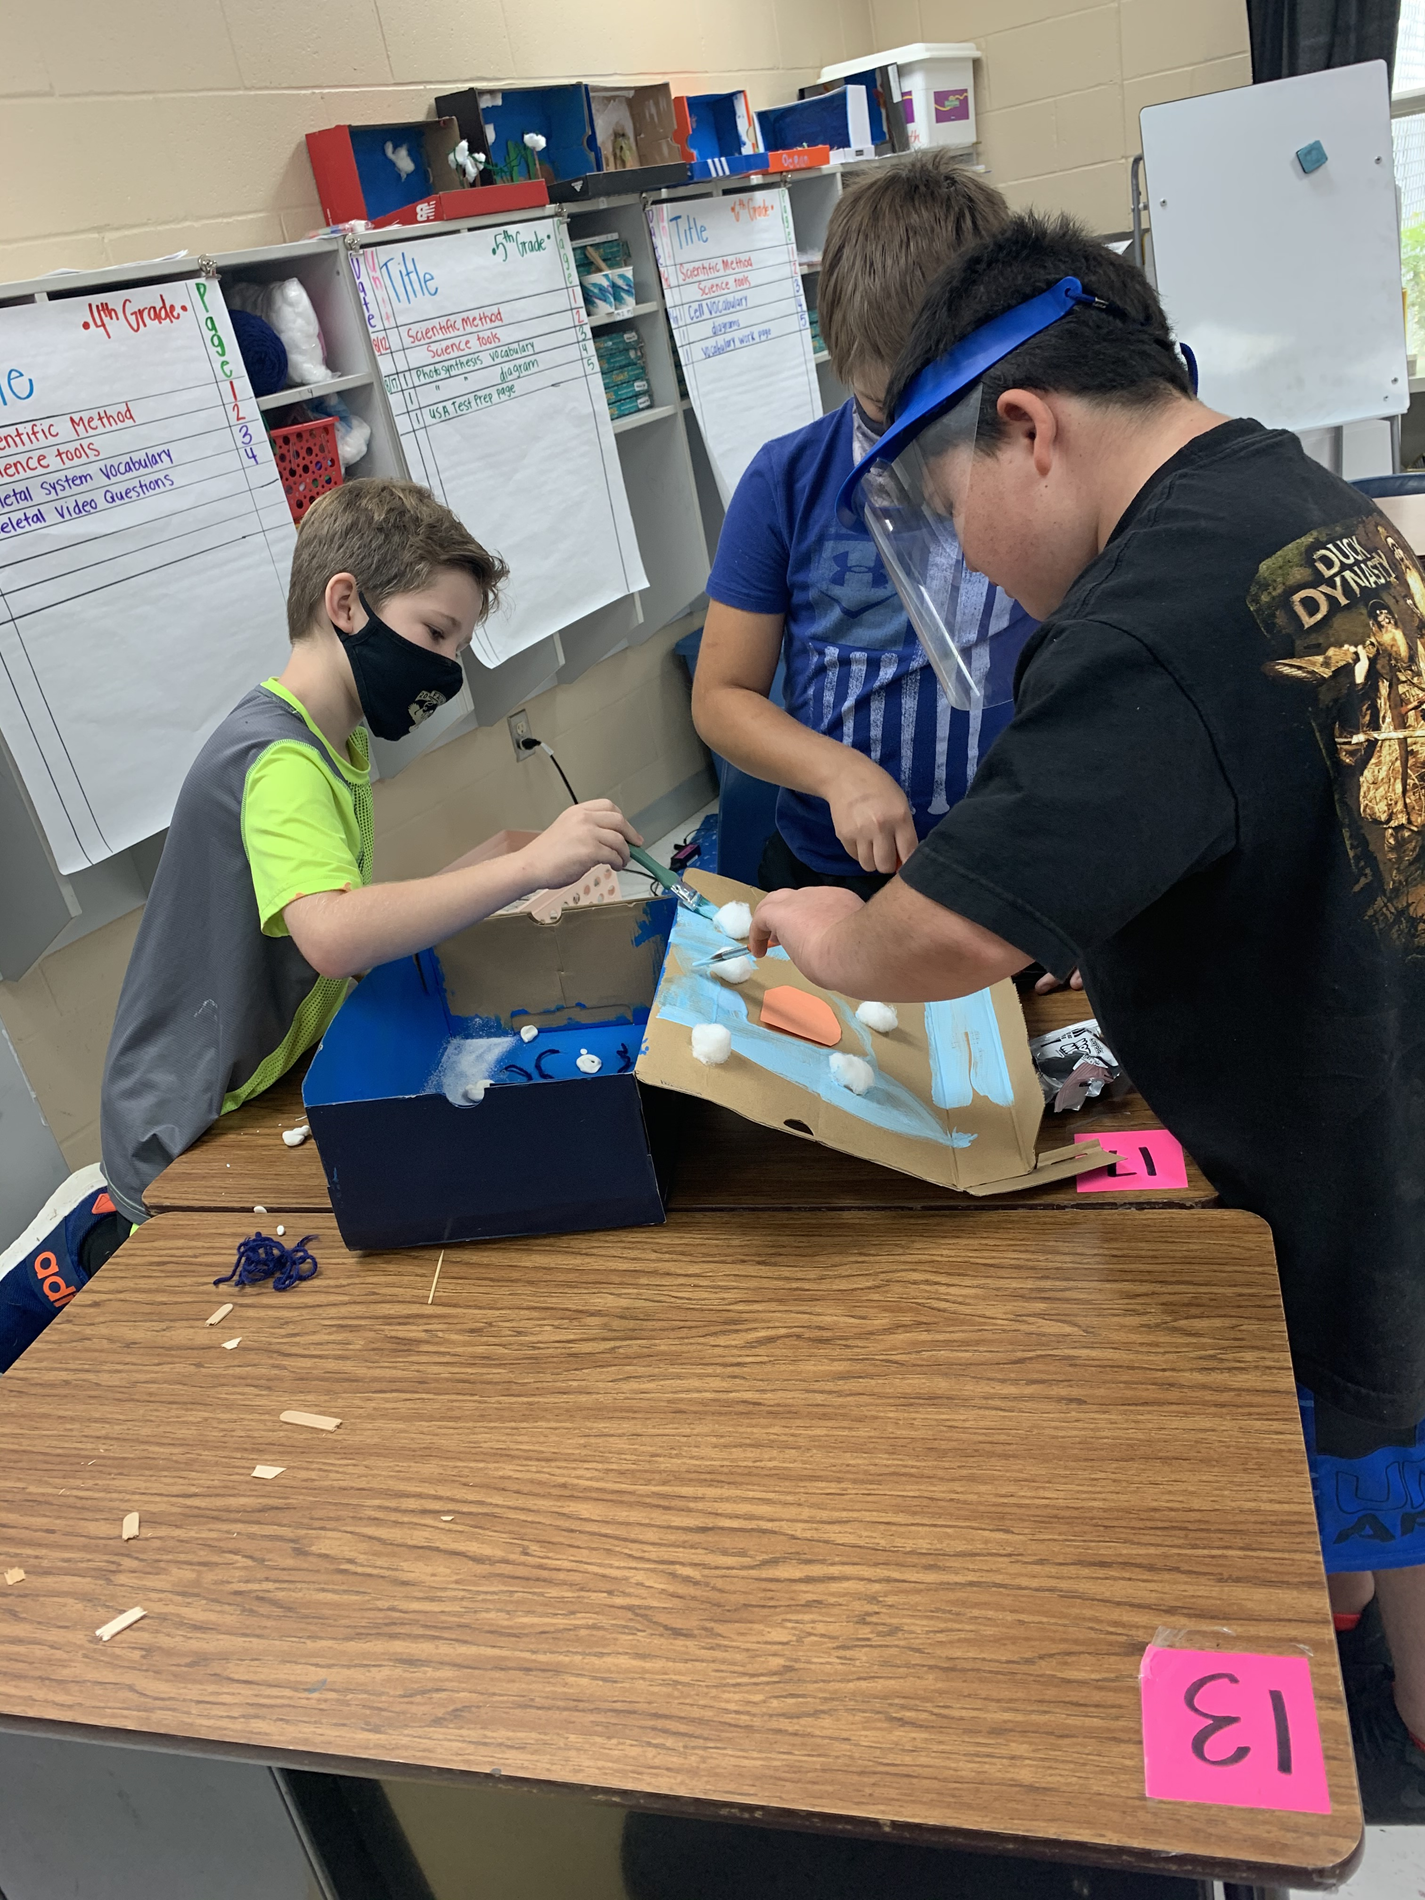 Easton, Conner, and Caleb working hard on their ecosystem design.